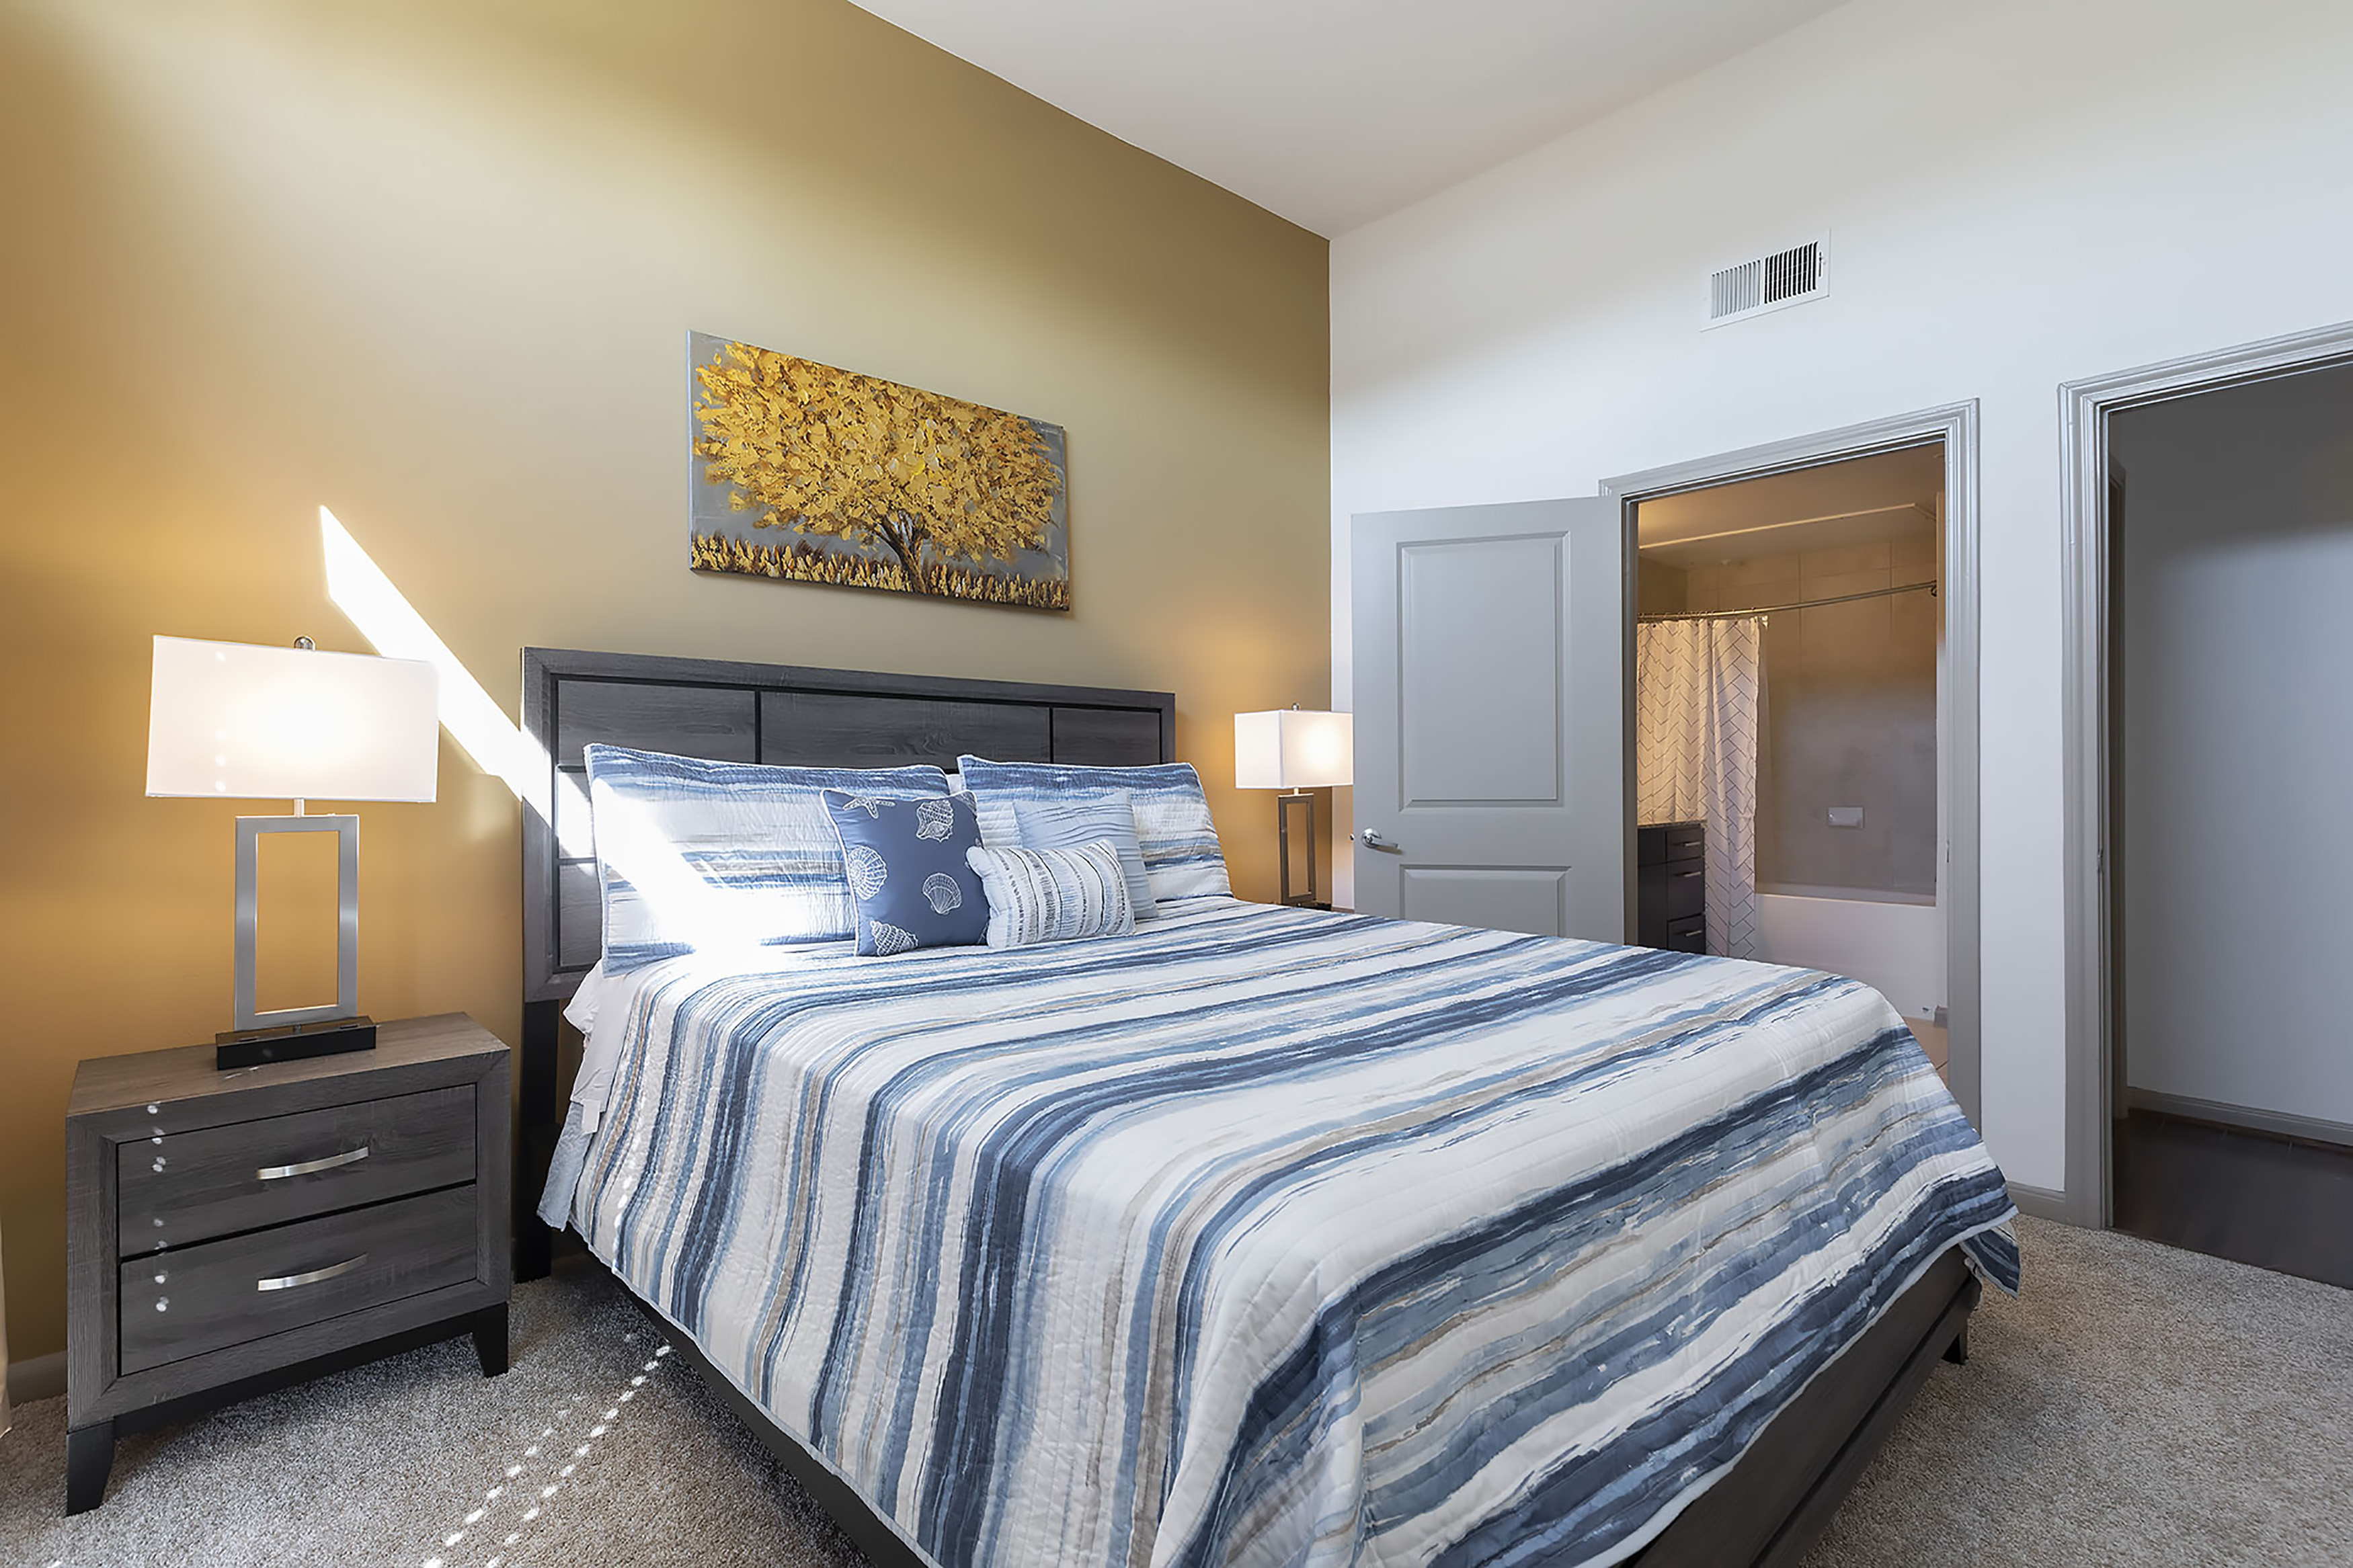 Apartment LUXURIOUS CALI KING BED MIDTOWN FULLY EQUIPPED CONDO -                 photo 21440930